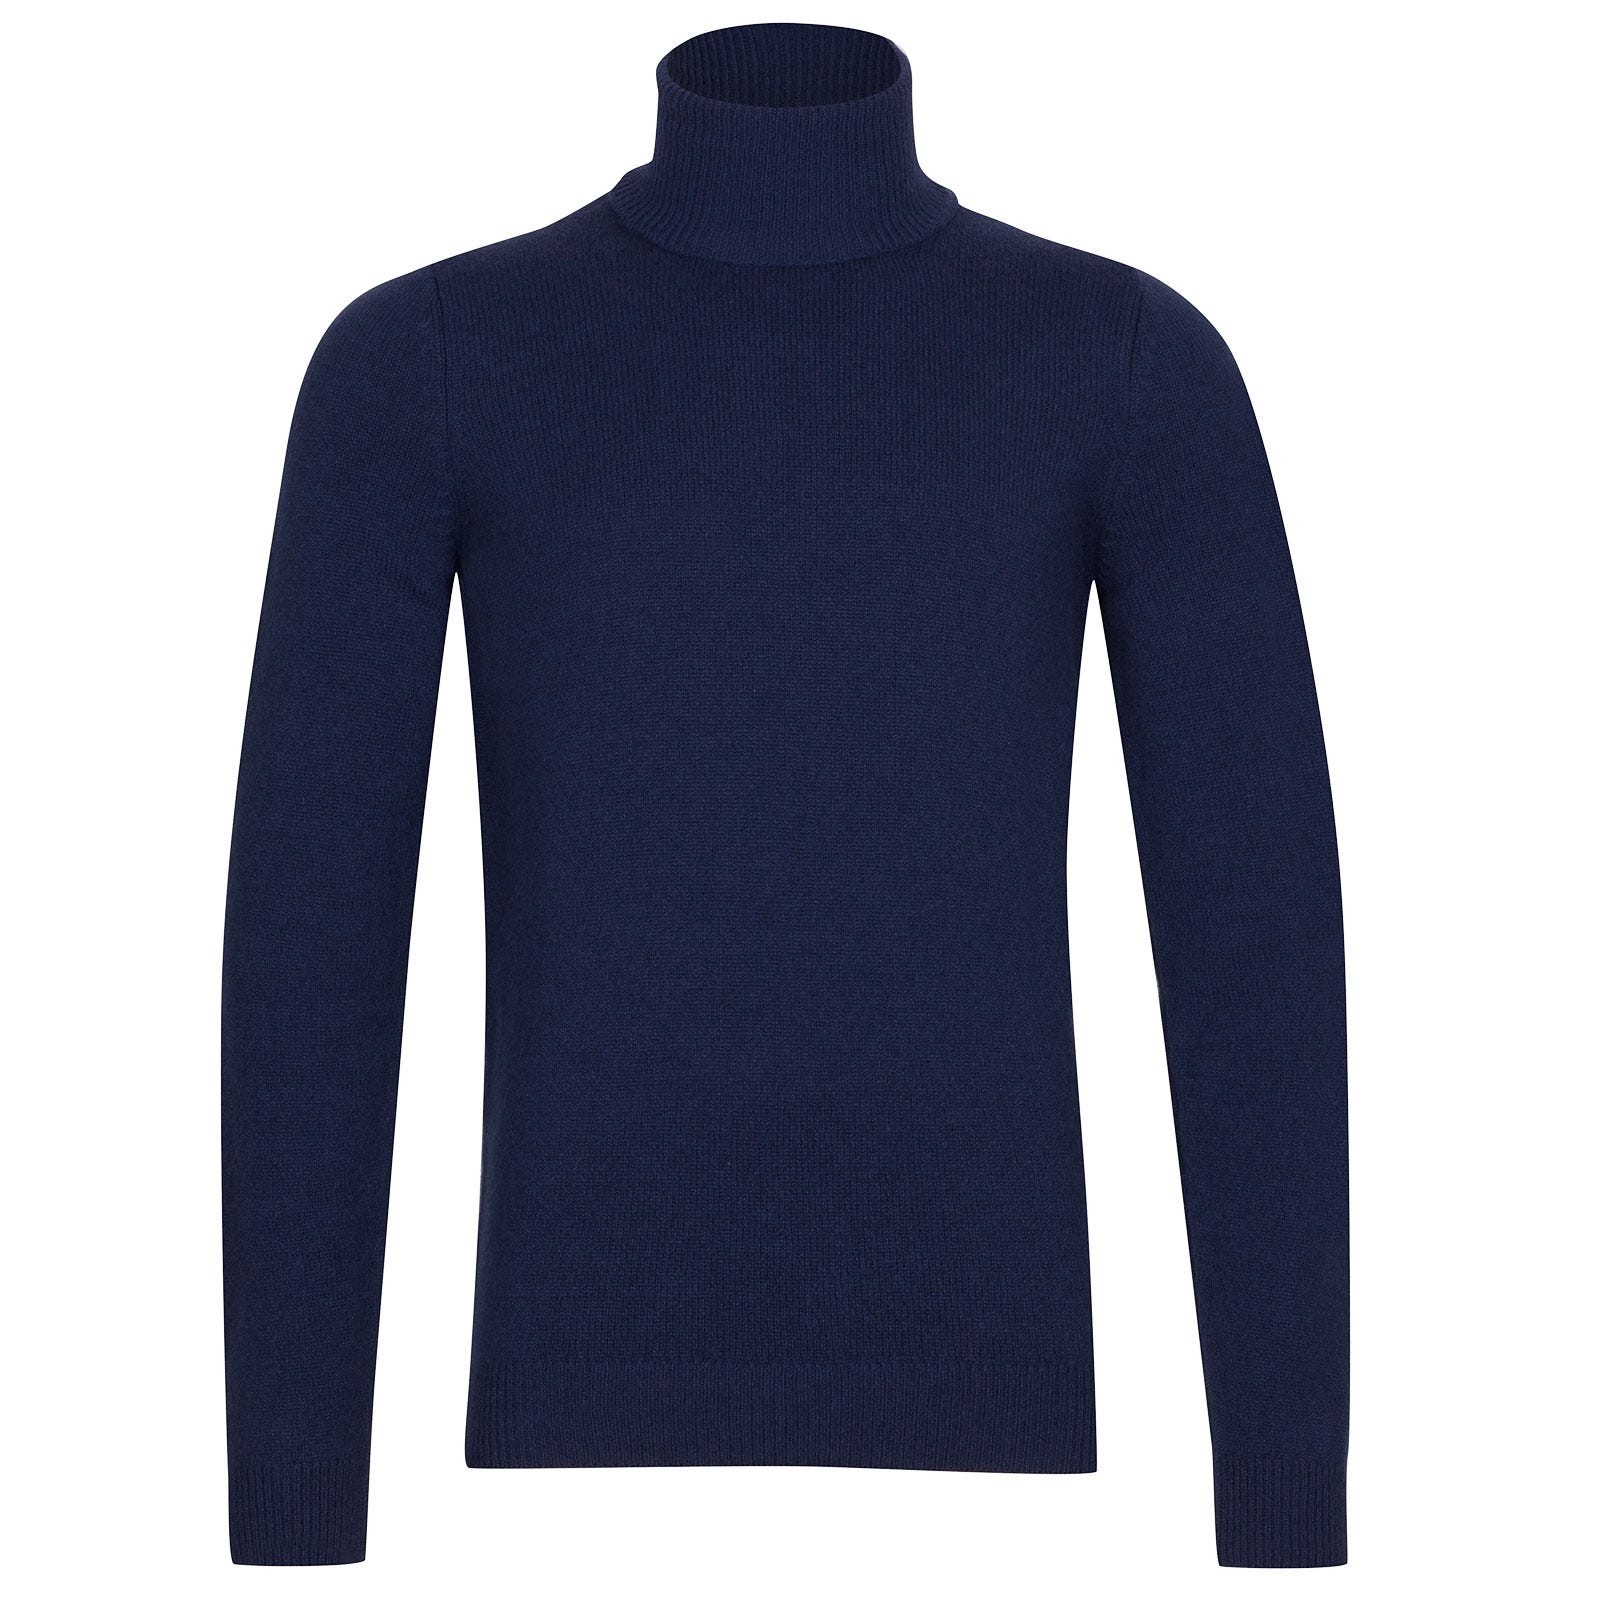 John Smedley Zachary Wool and Cashmere Pullover in Indigo-S